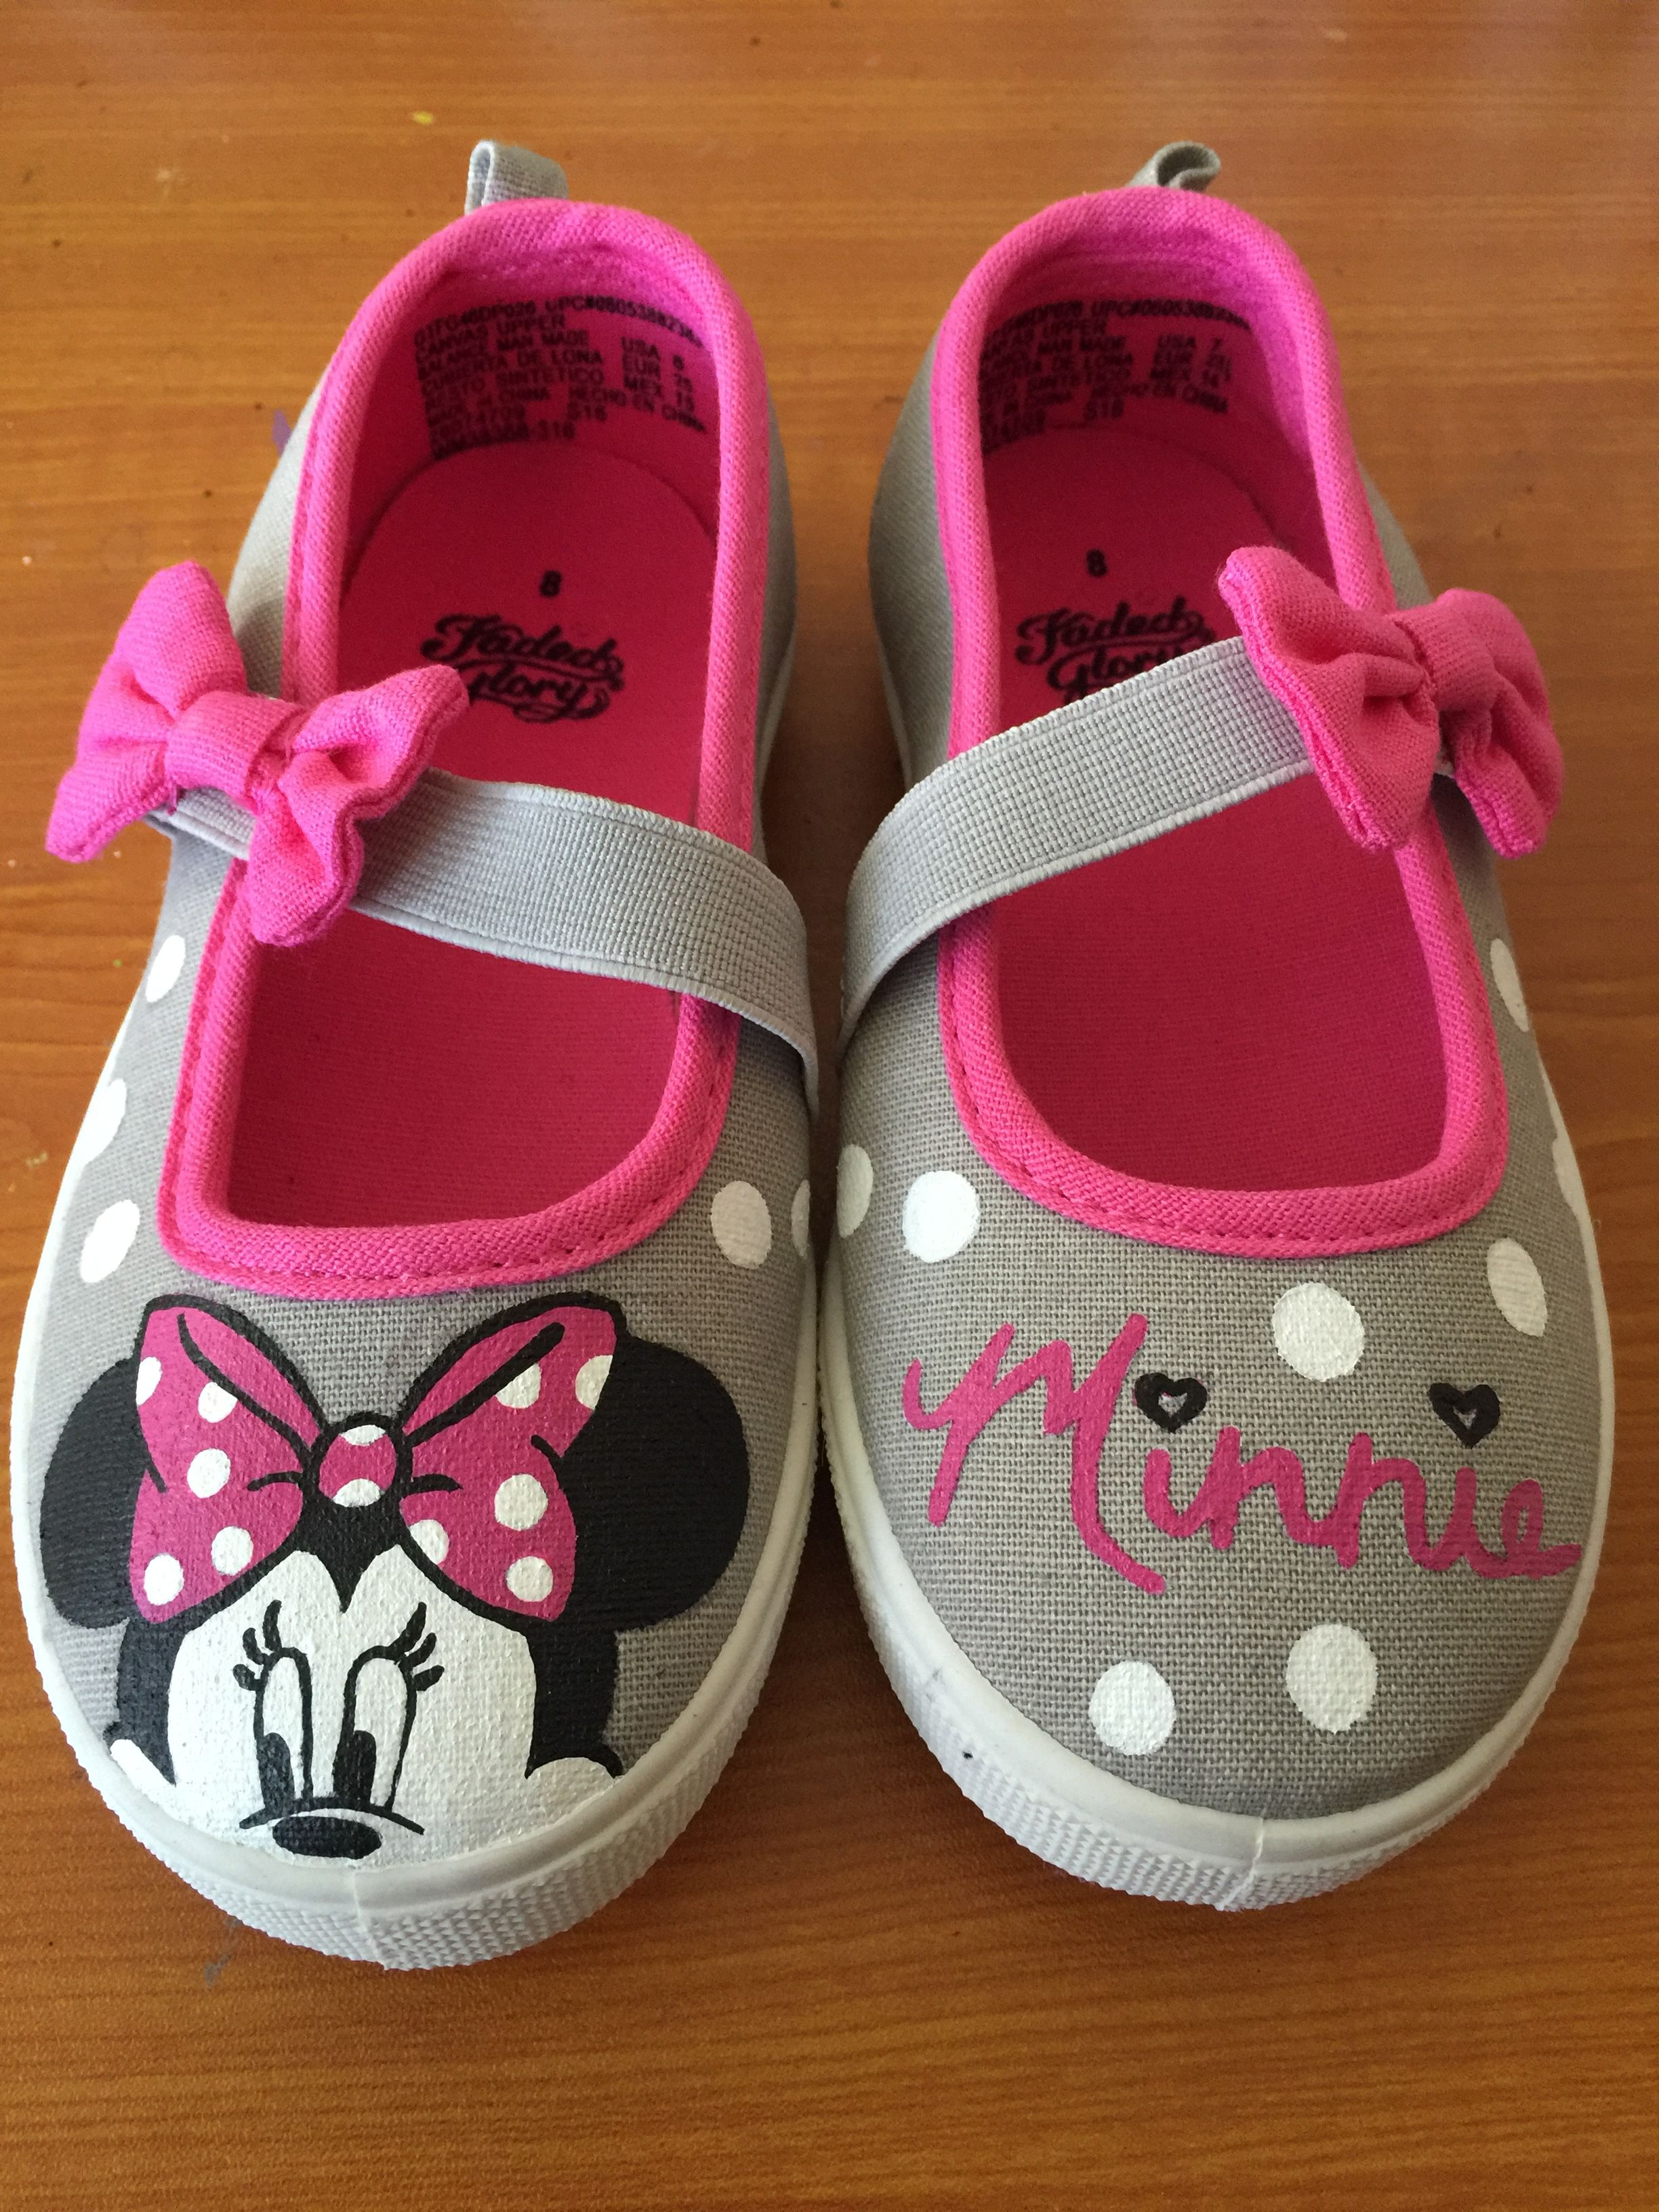 28dfe5e98b32b Minnie Mouse shoes for toddlers | Hand-Painted Shoes | Shoes, Disney ...